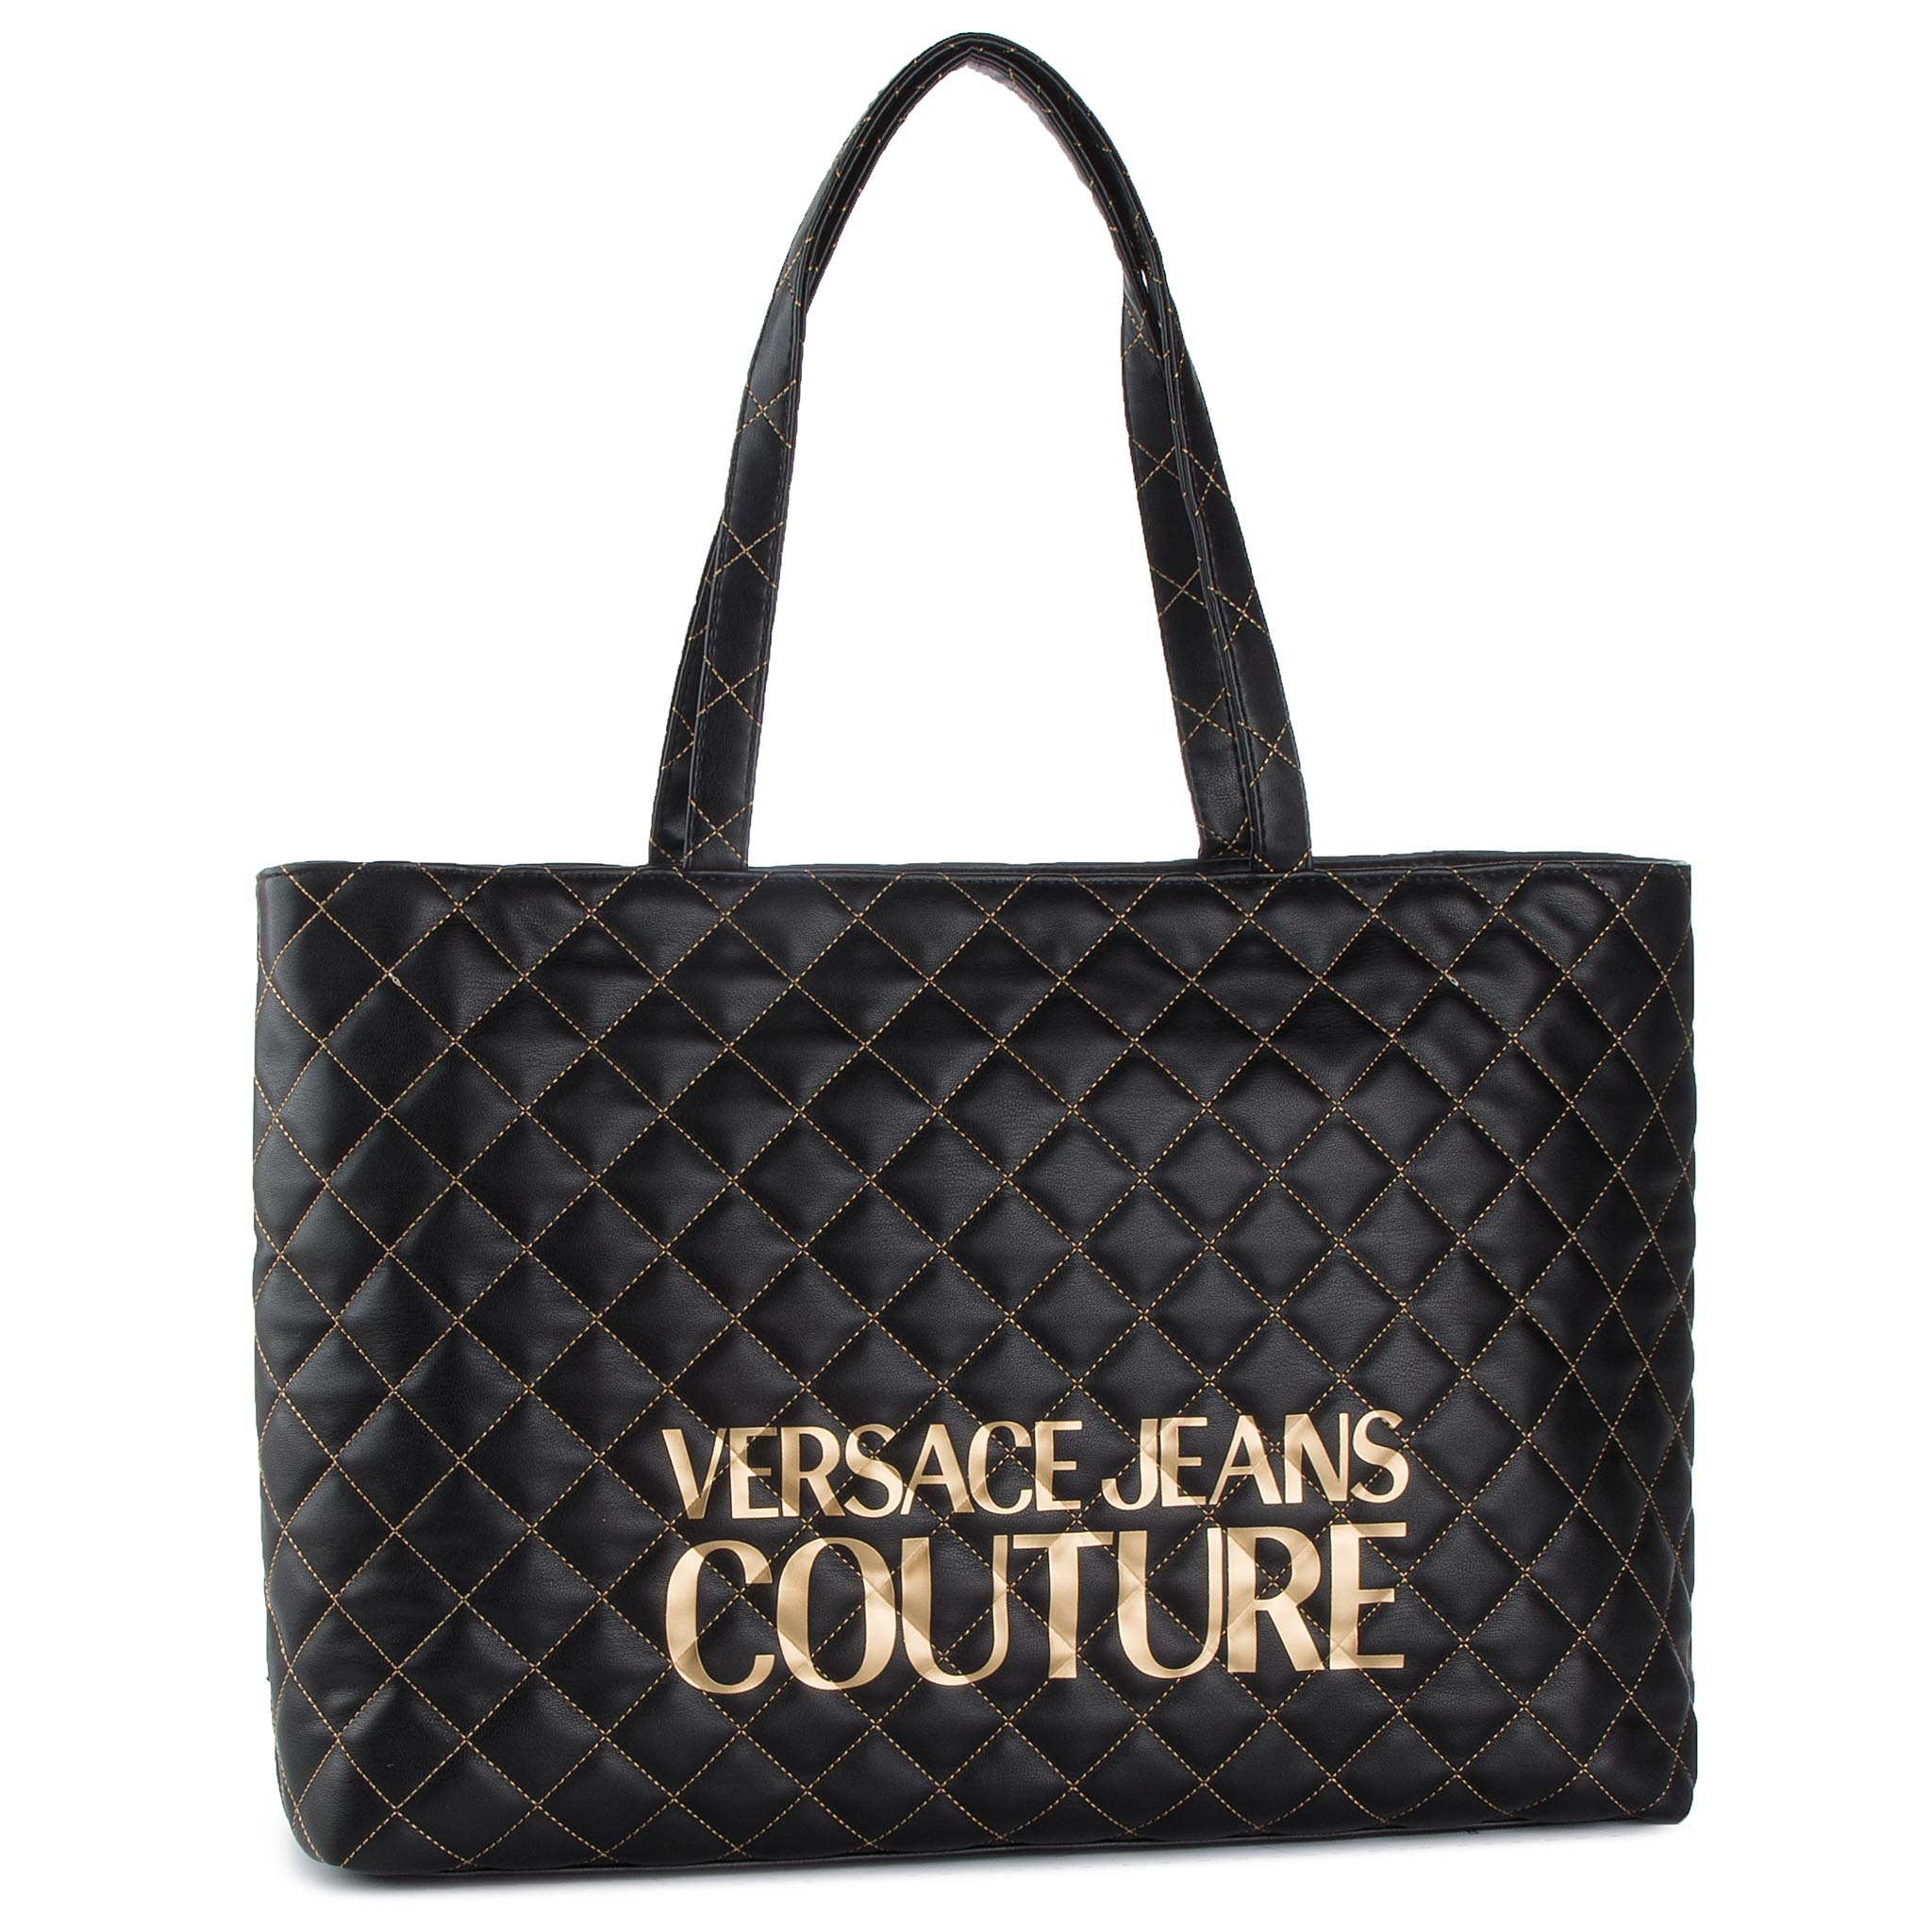 Kabelka VERSACE JEANS COUTURE - E1VUBBB7 40294 899